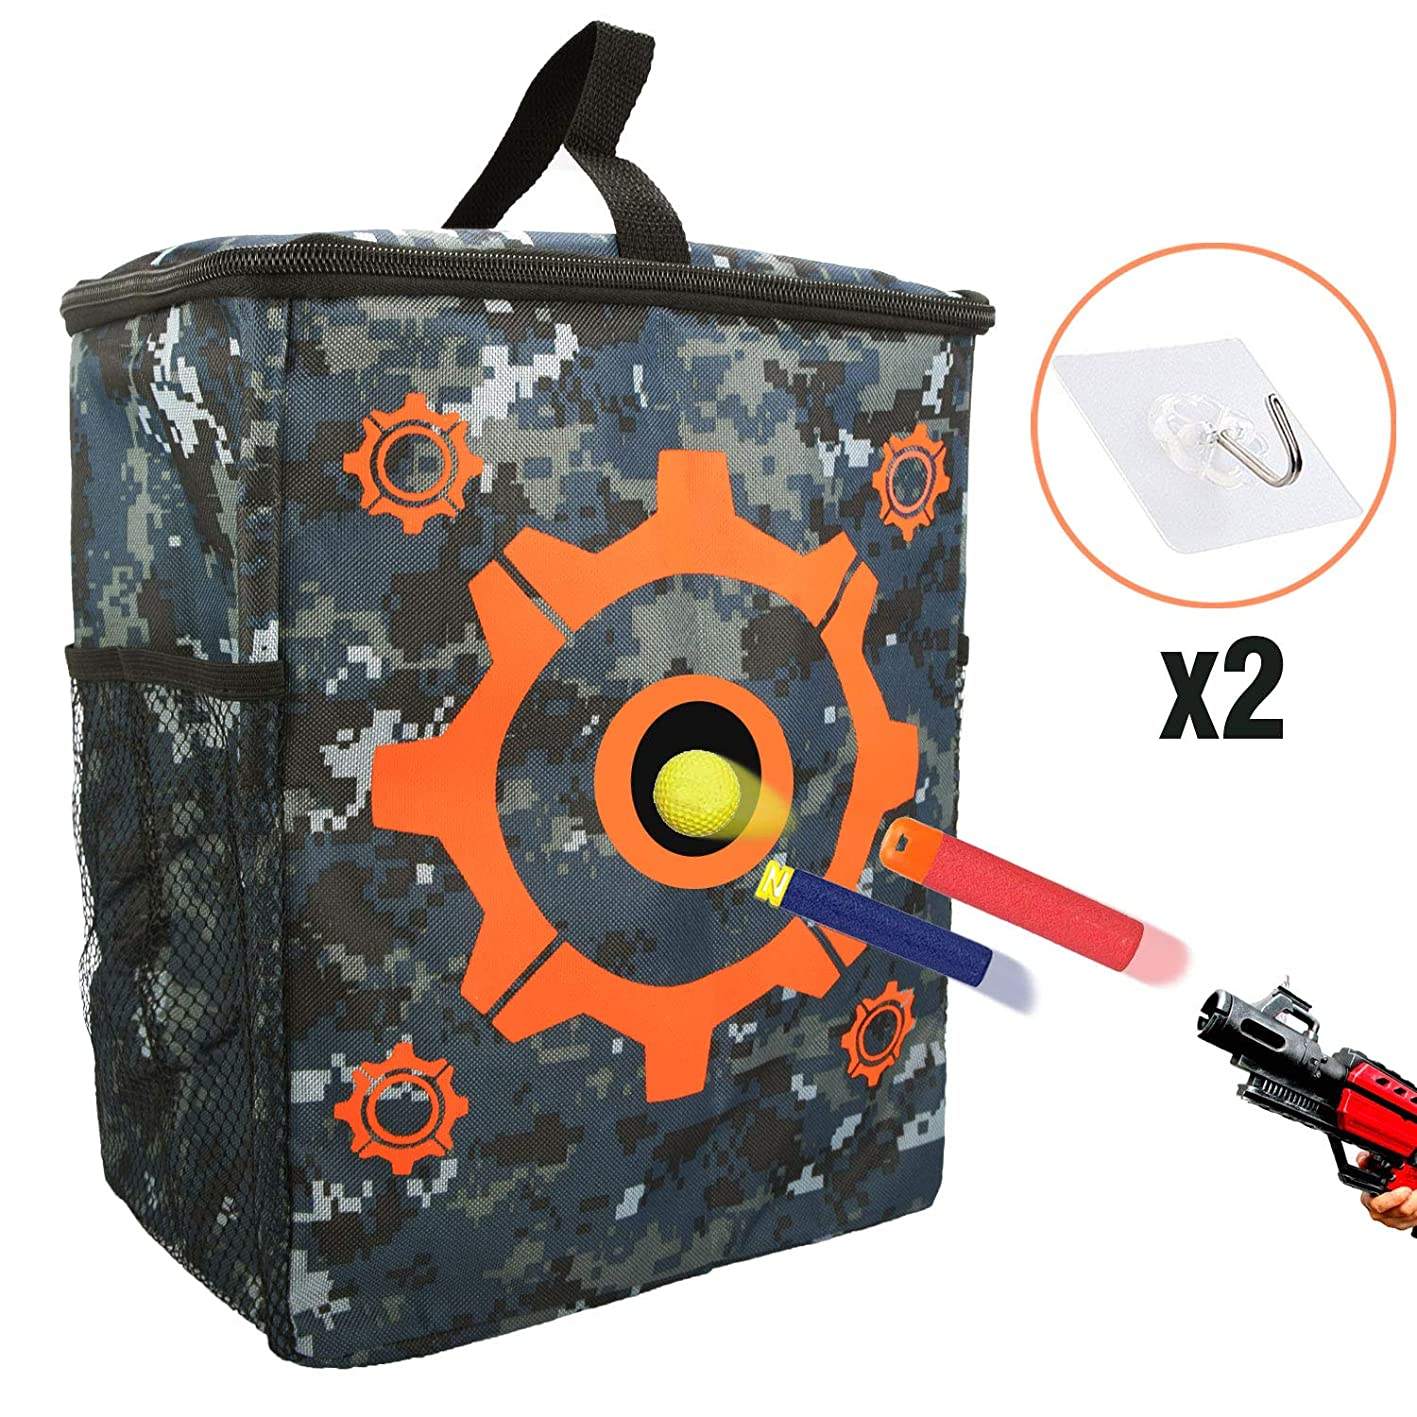 Flantor Target Pouch Bag, Compatible with Nerf Guns Darts N-Strike Elite Target Shooting Bullets Bag Carry Equipment Bag (Target Pouch Bag) wsdfrwymsgq318